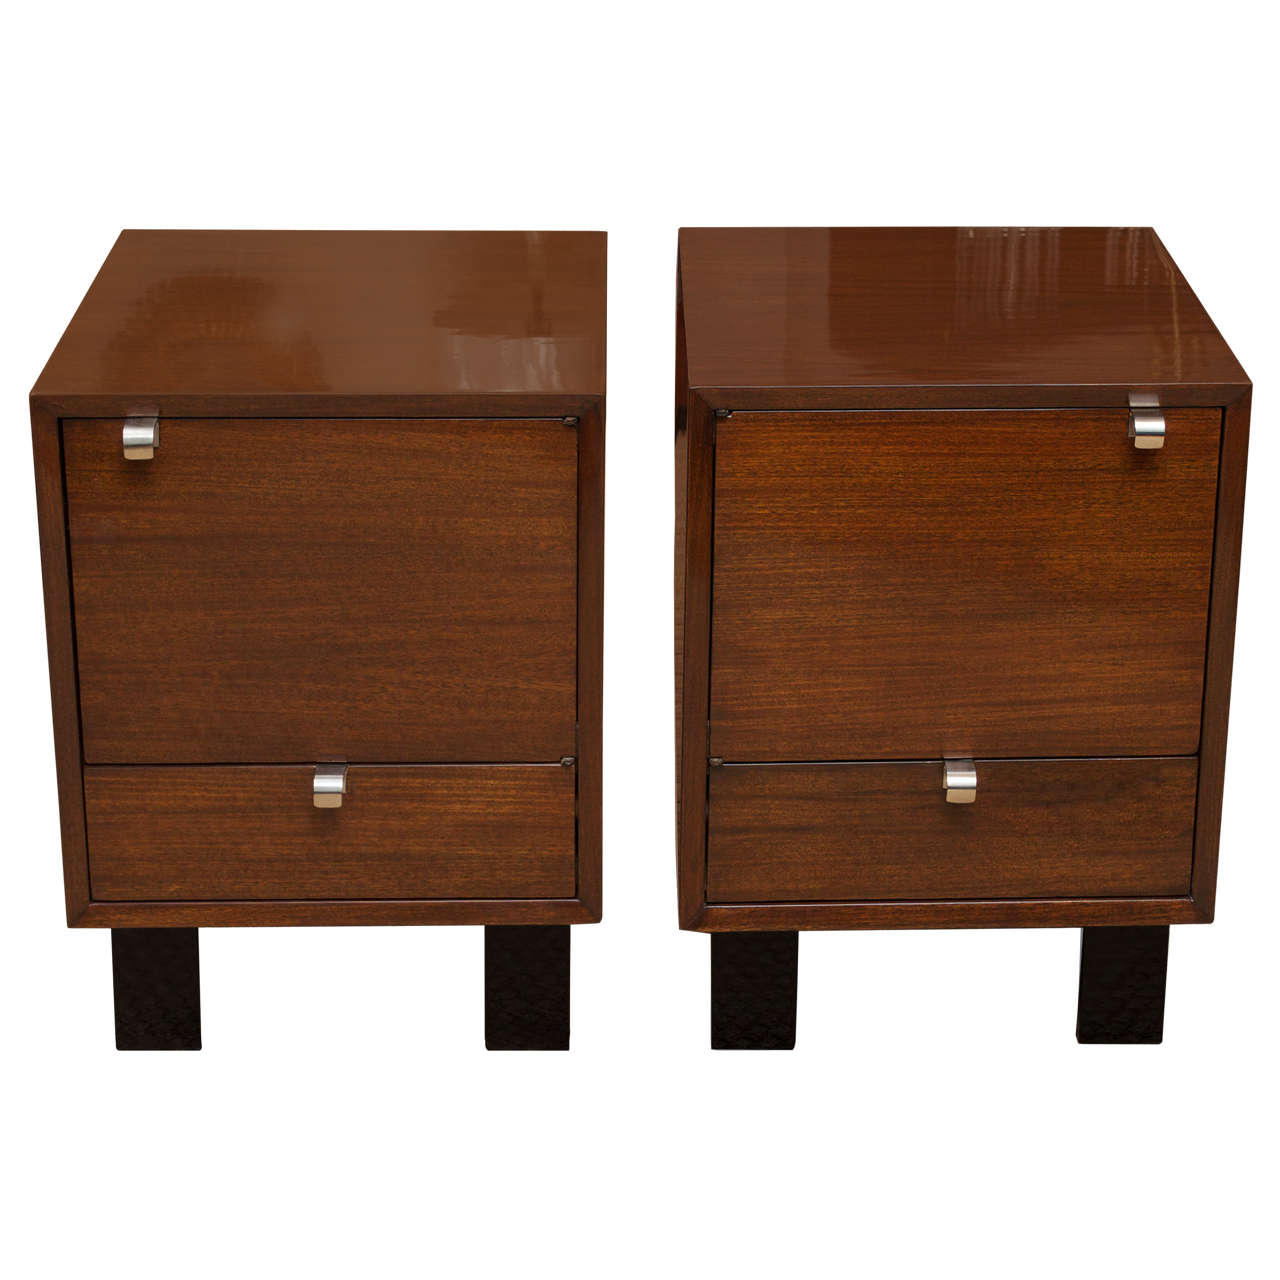 George Nelson Nightstands at 1stdibs